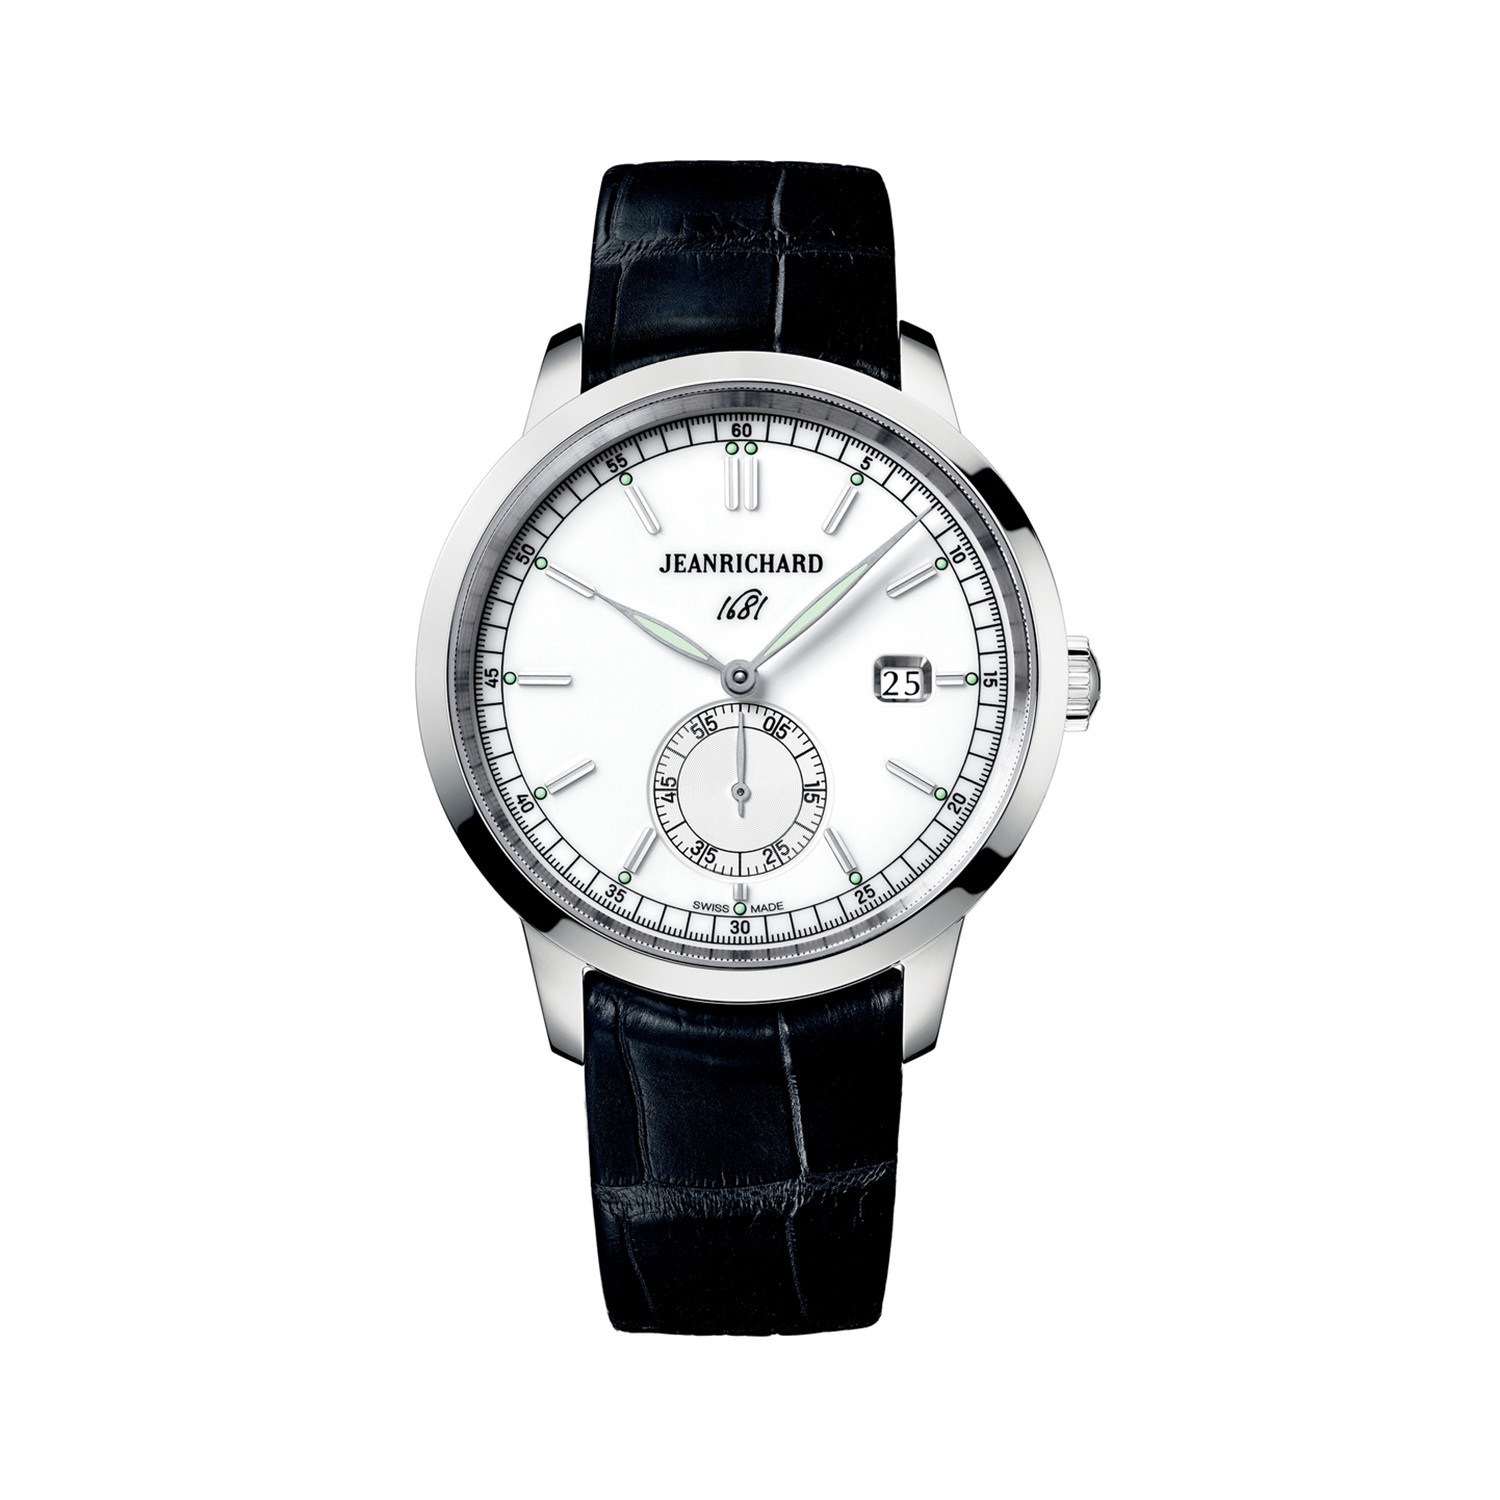 JeanRichard 1681 Ronde Small Second Automatic // 60310-11 ...